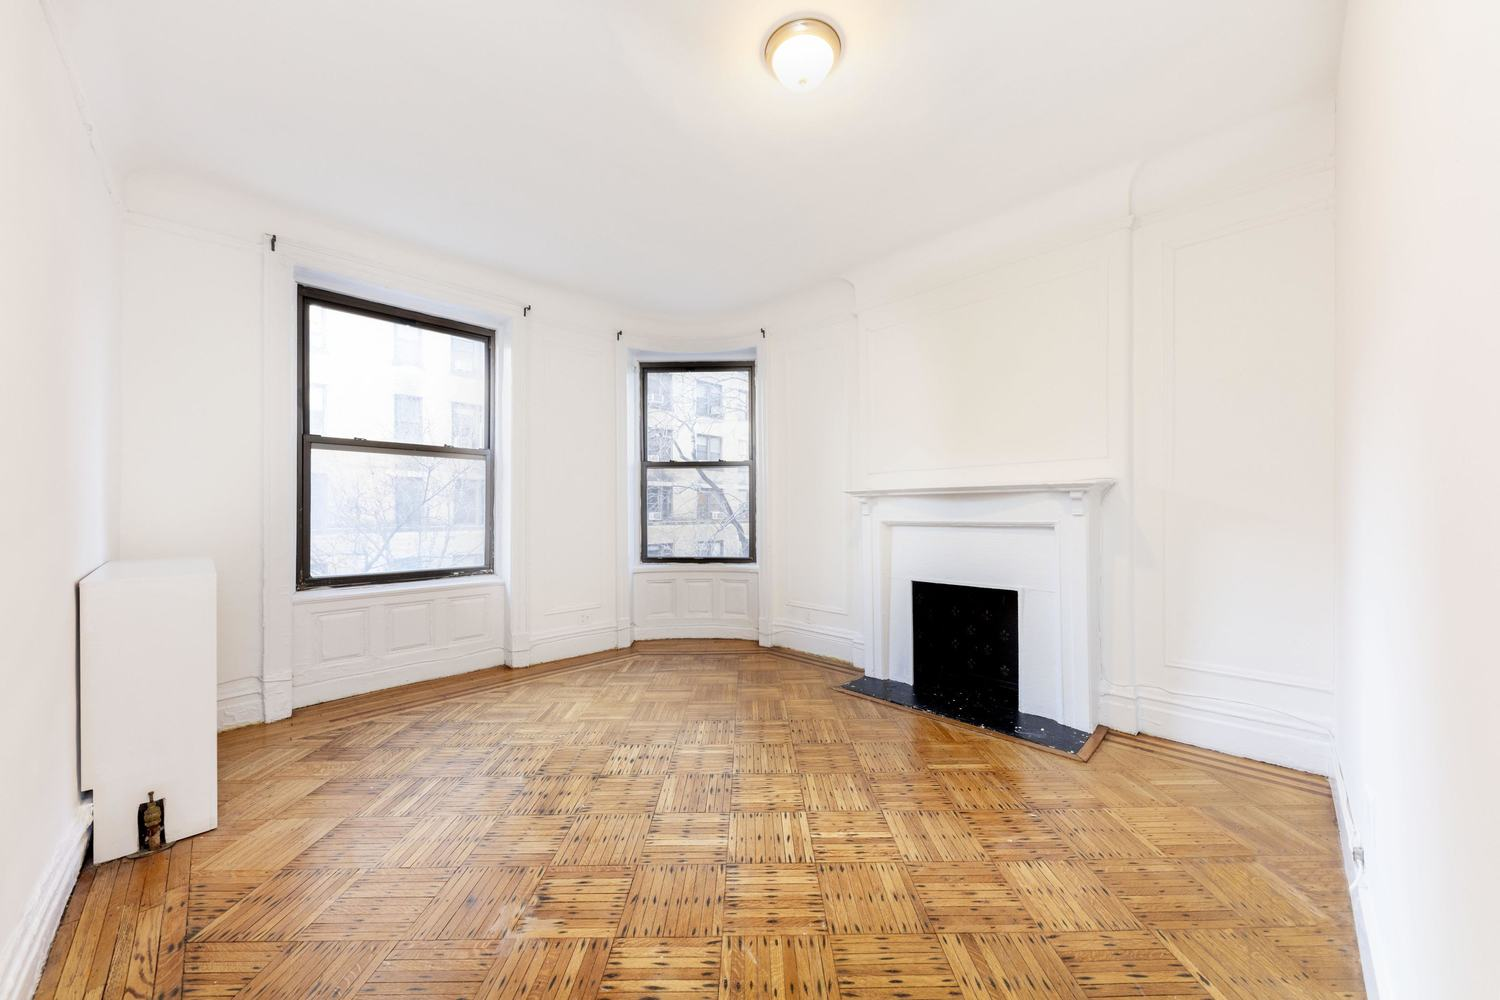 233 West 83rd Street, Unit 2C Manhattan, NY 10024